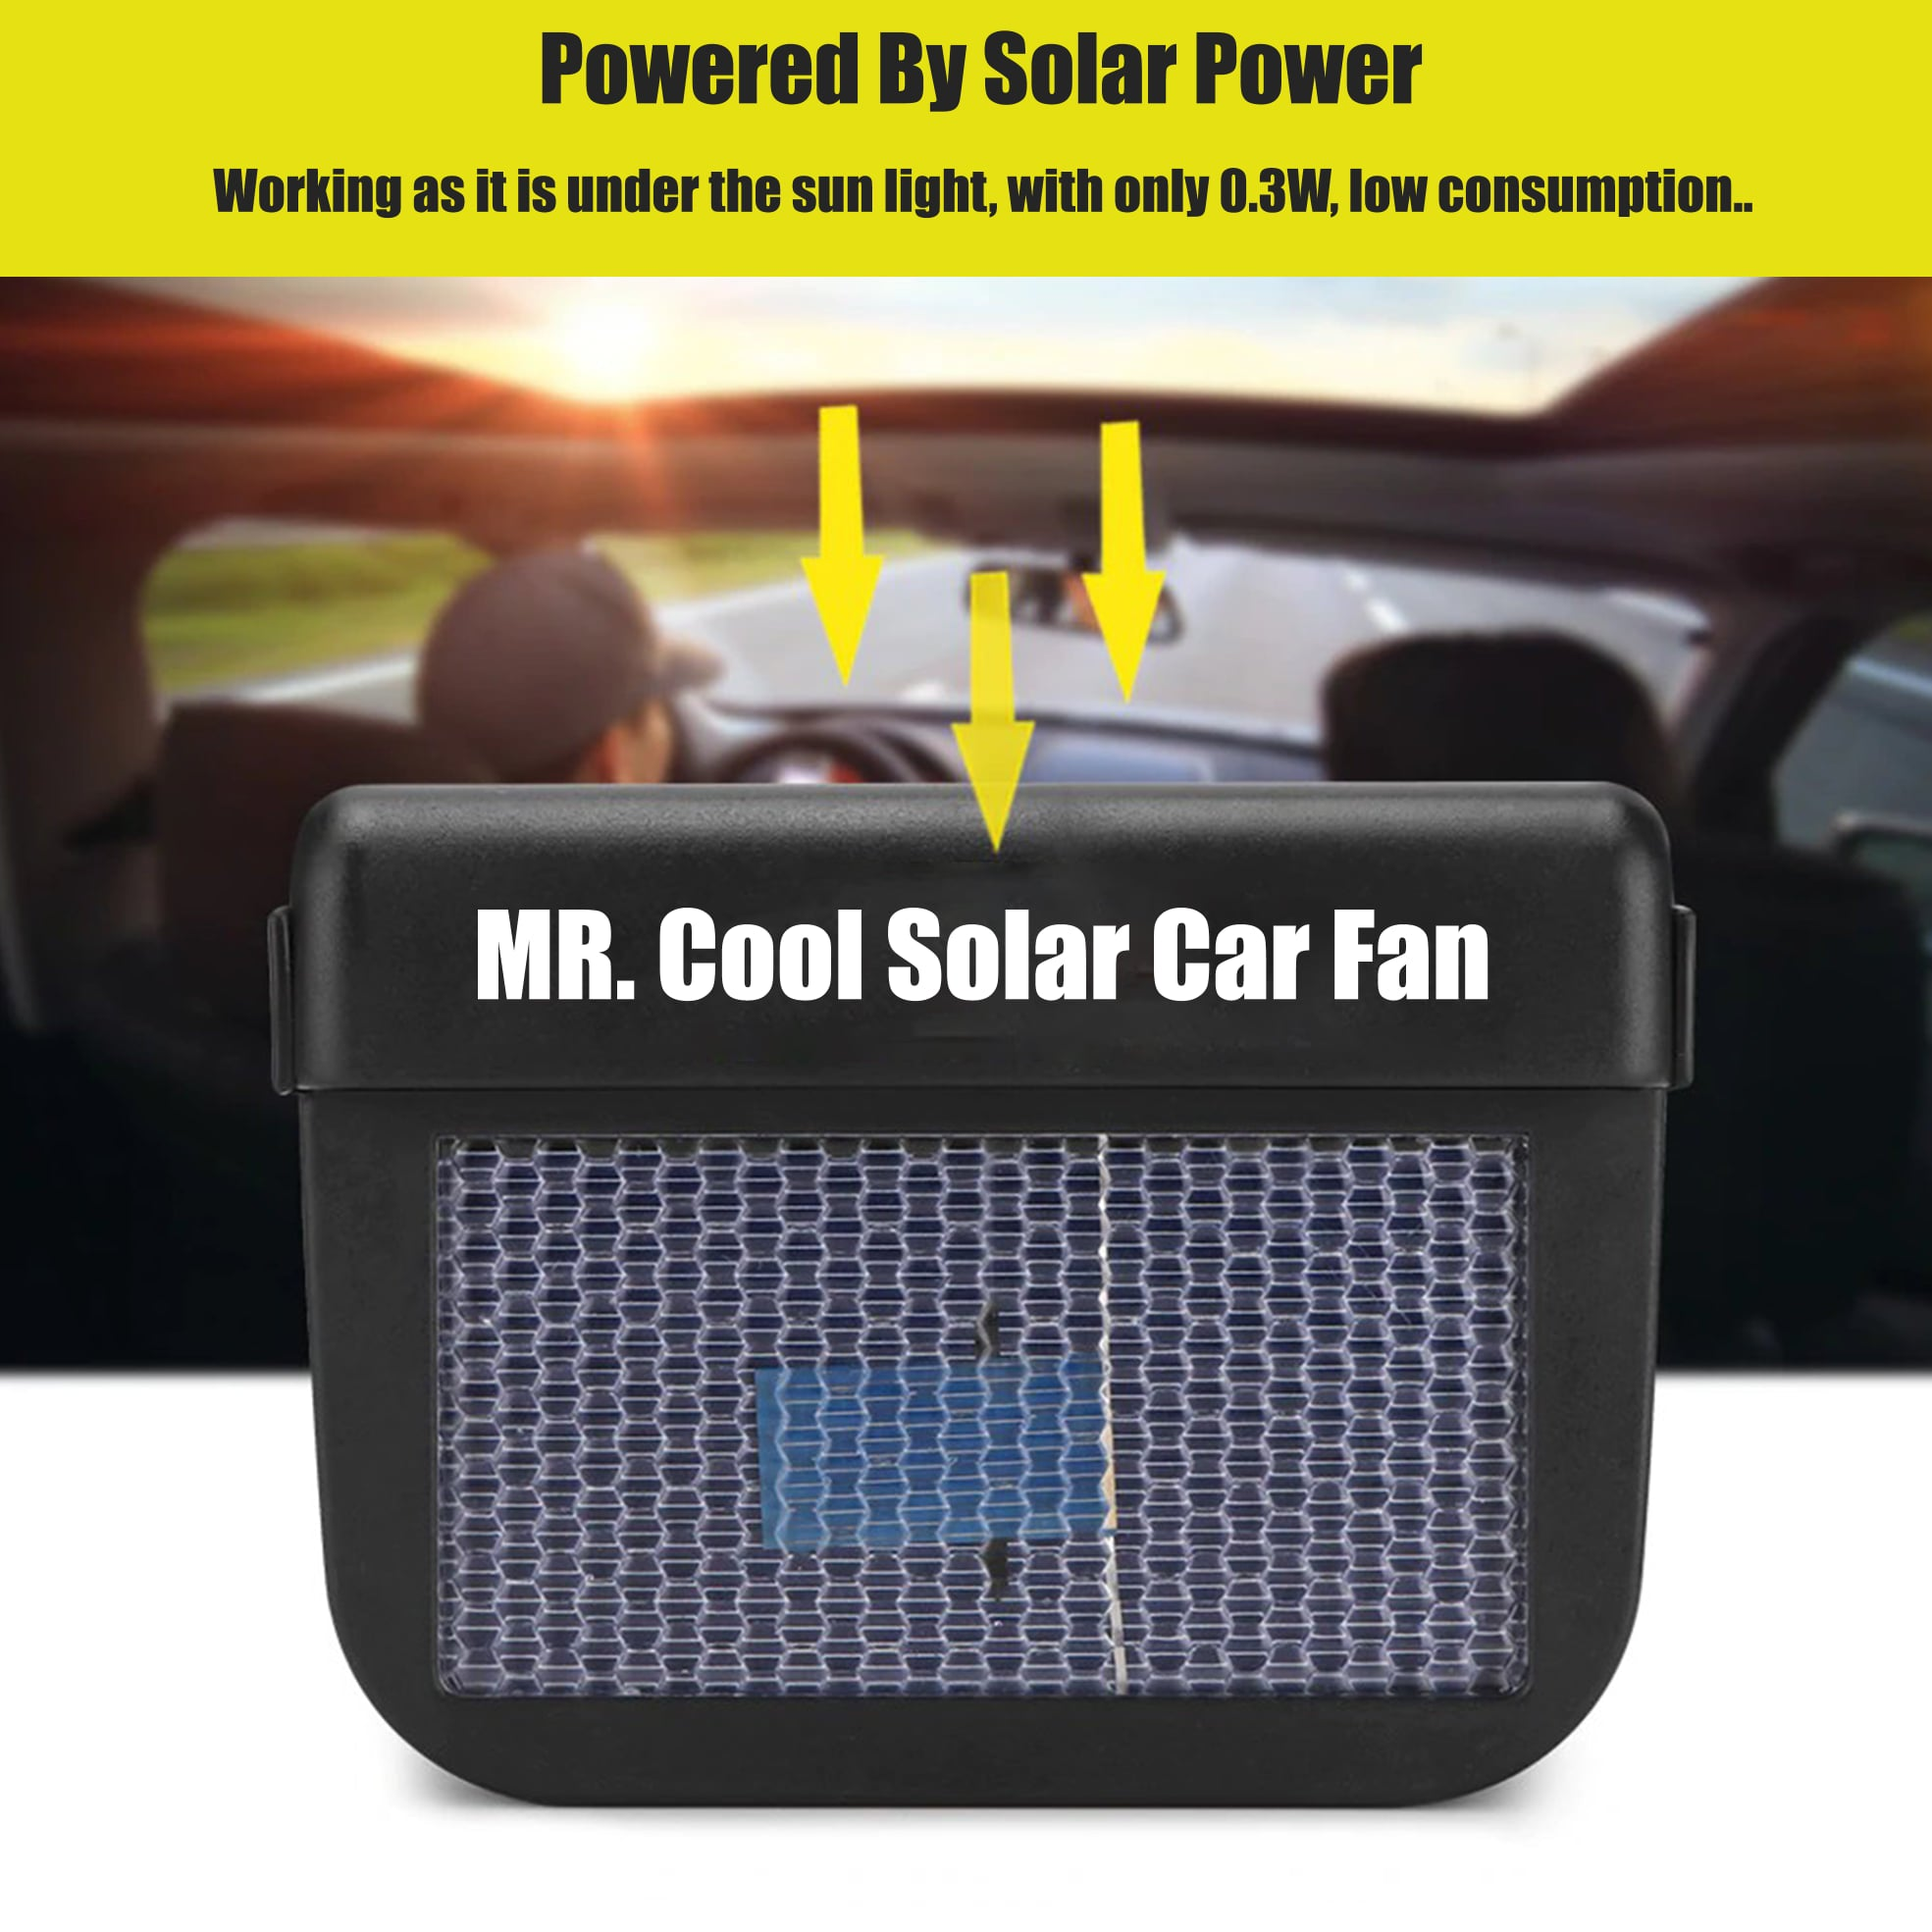 Mr. Cool Solar Car Fan